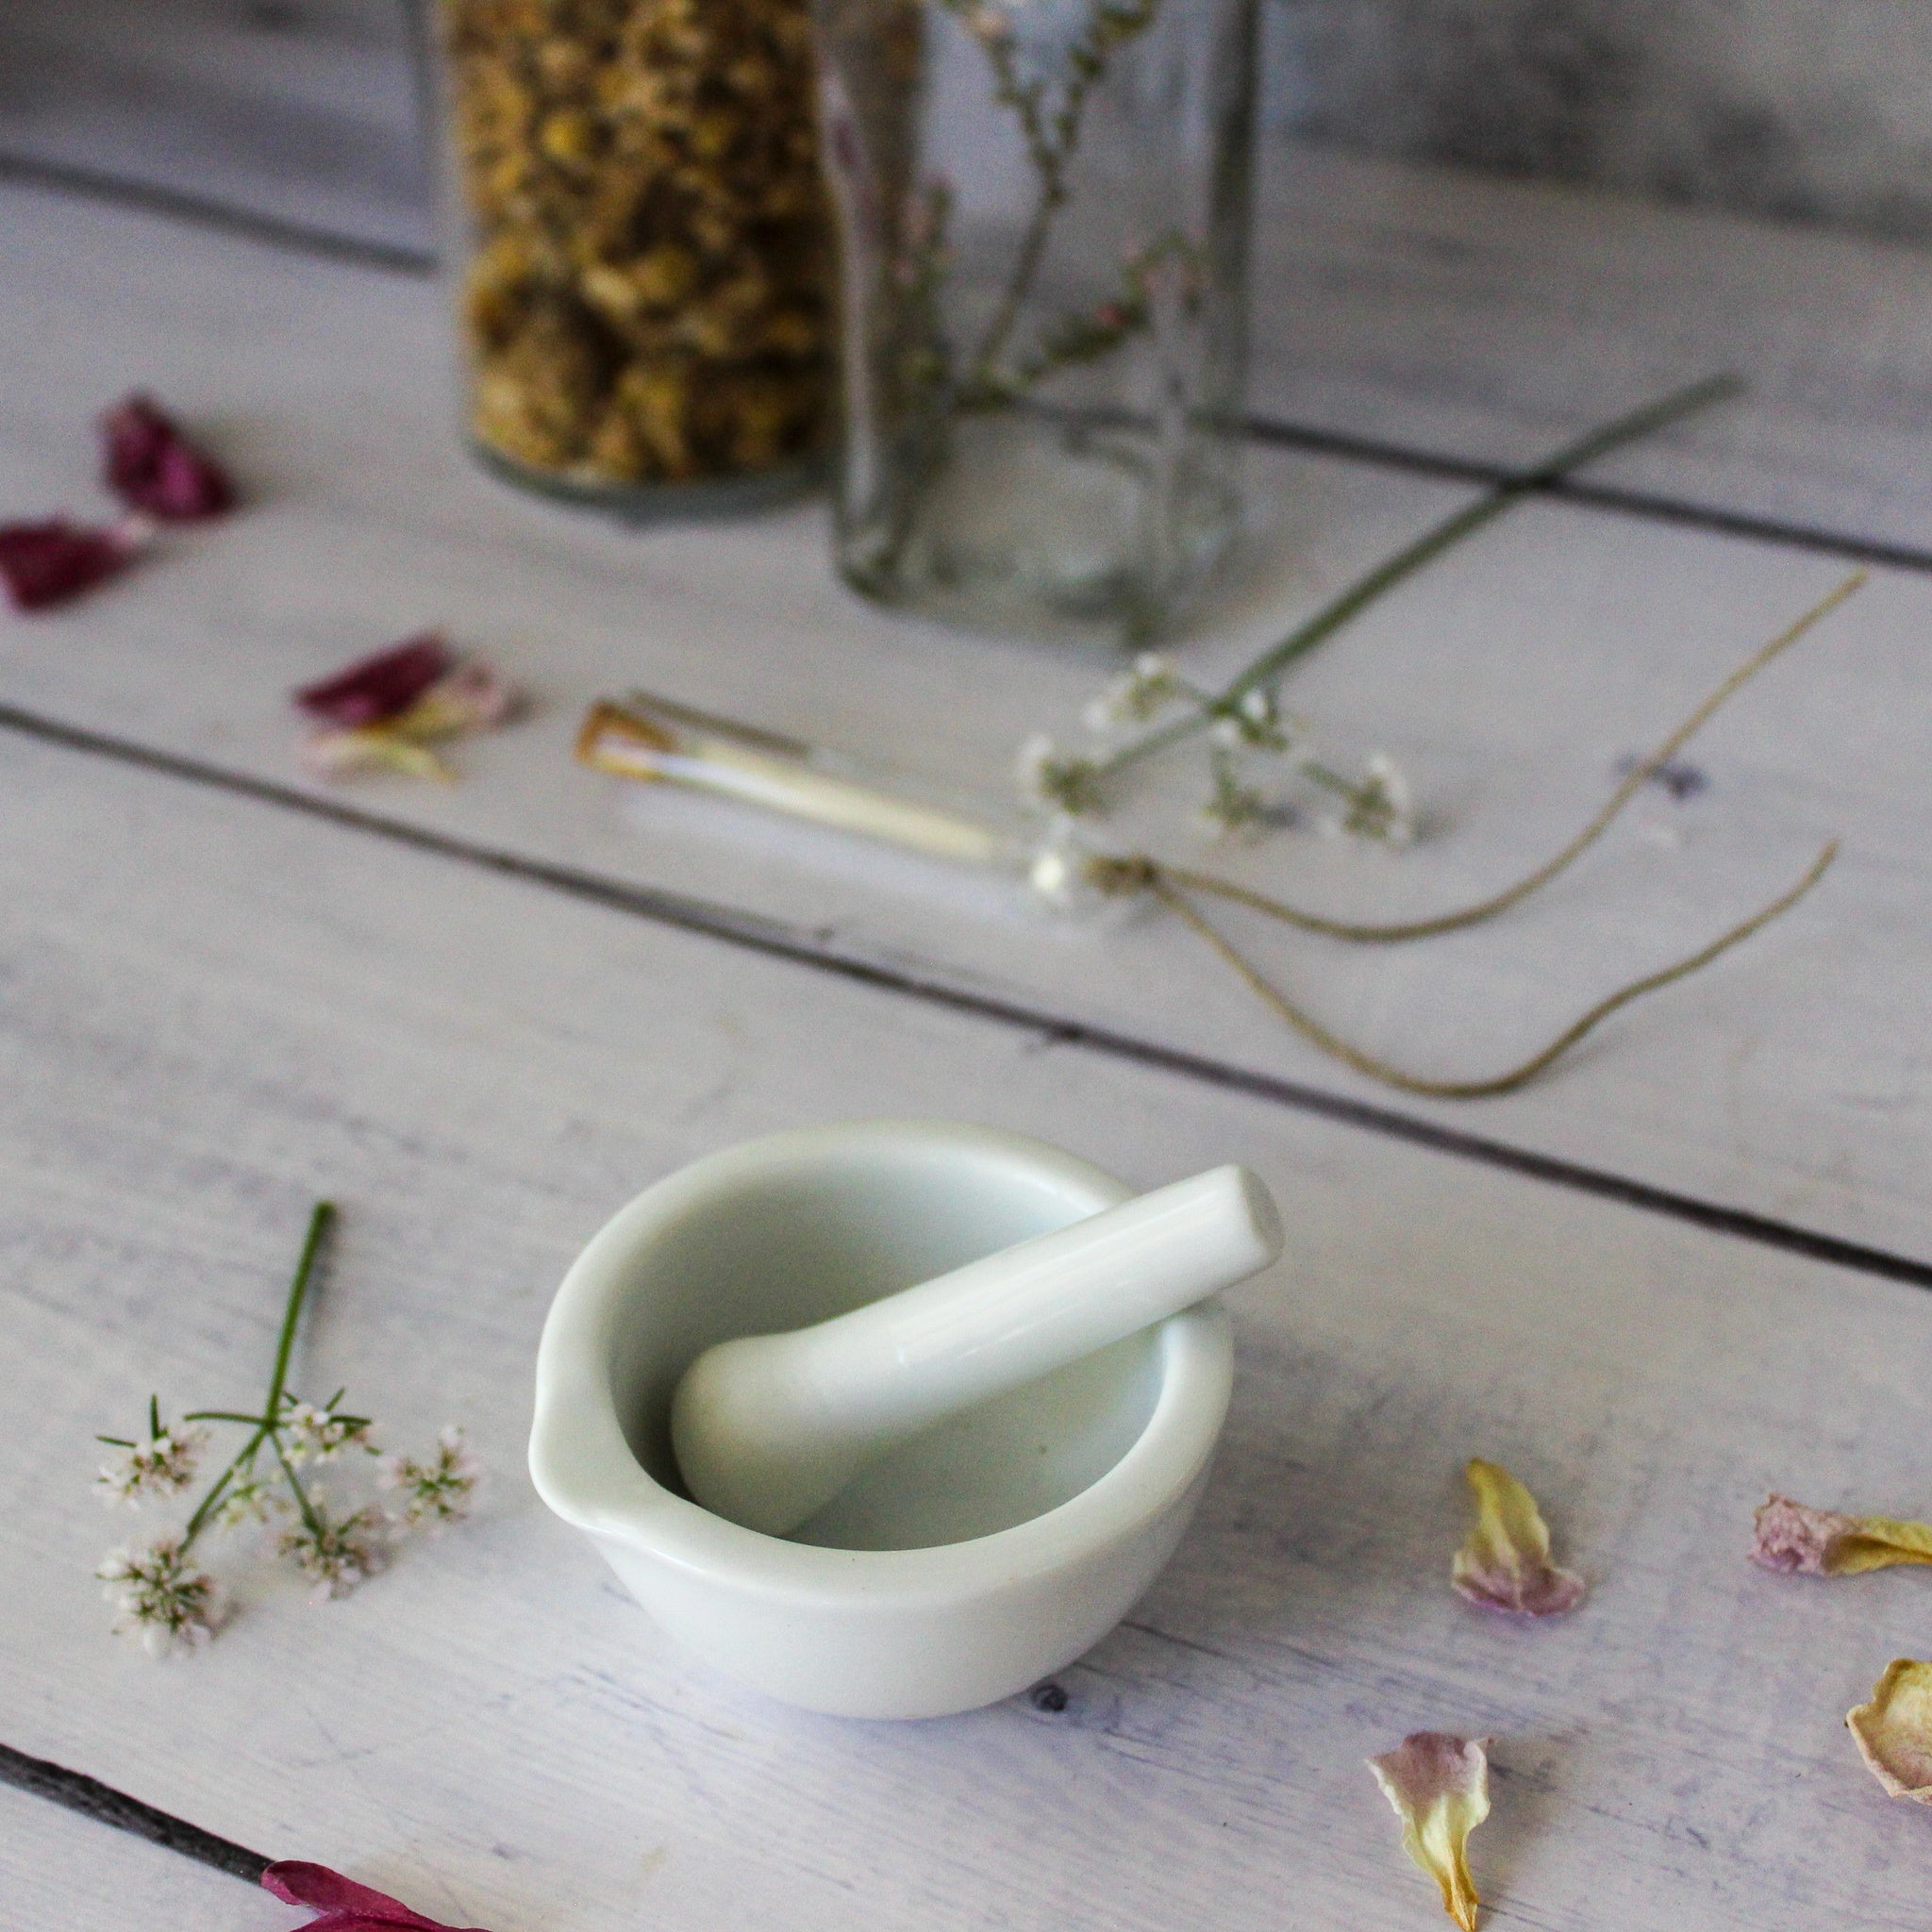 Tiny Porcelain Mortar & Pestle